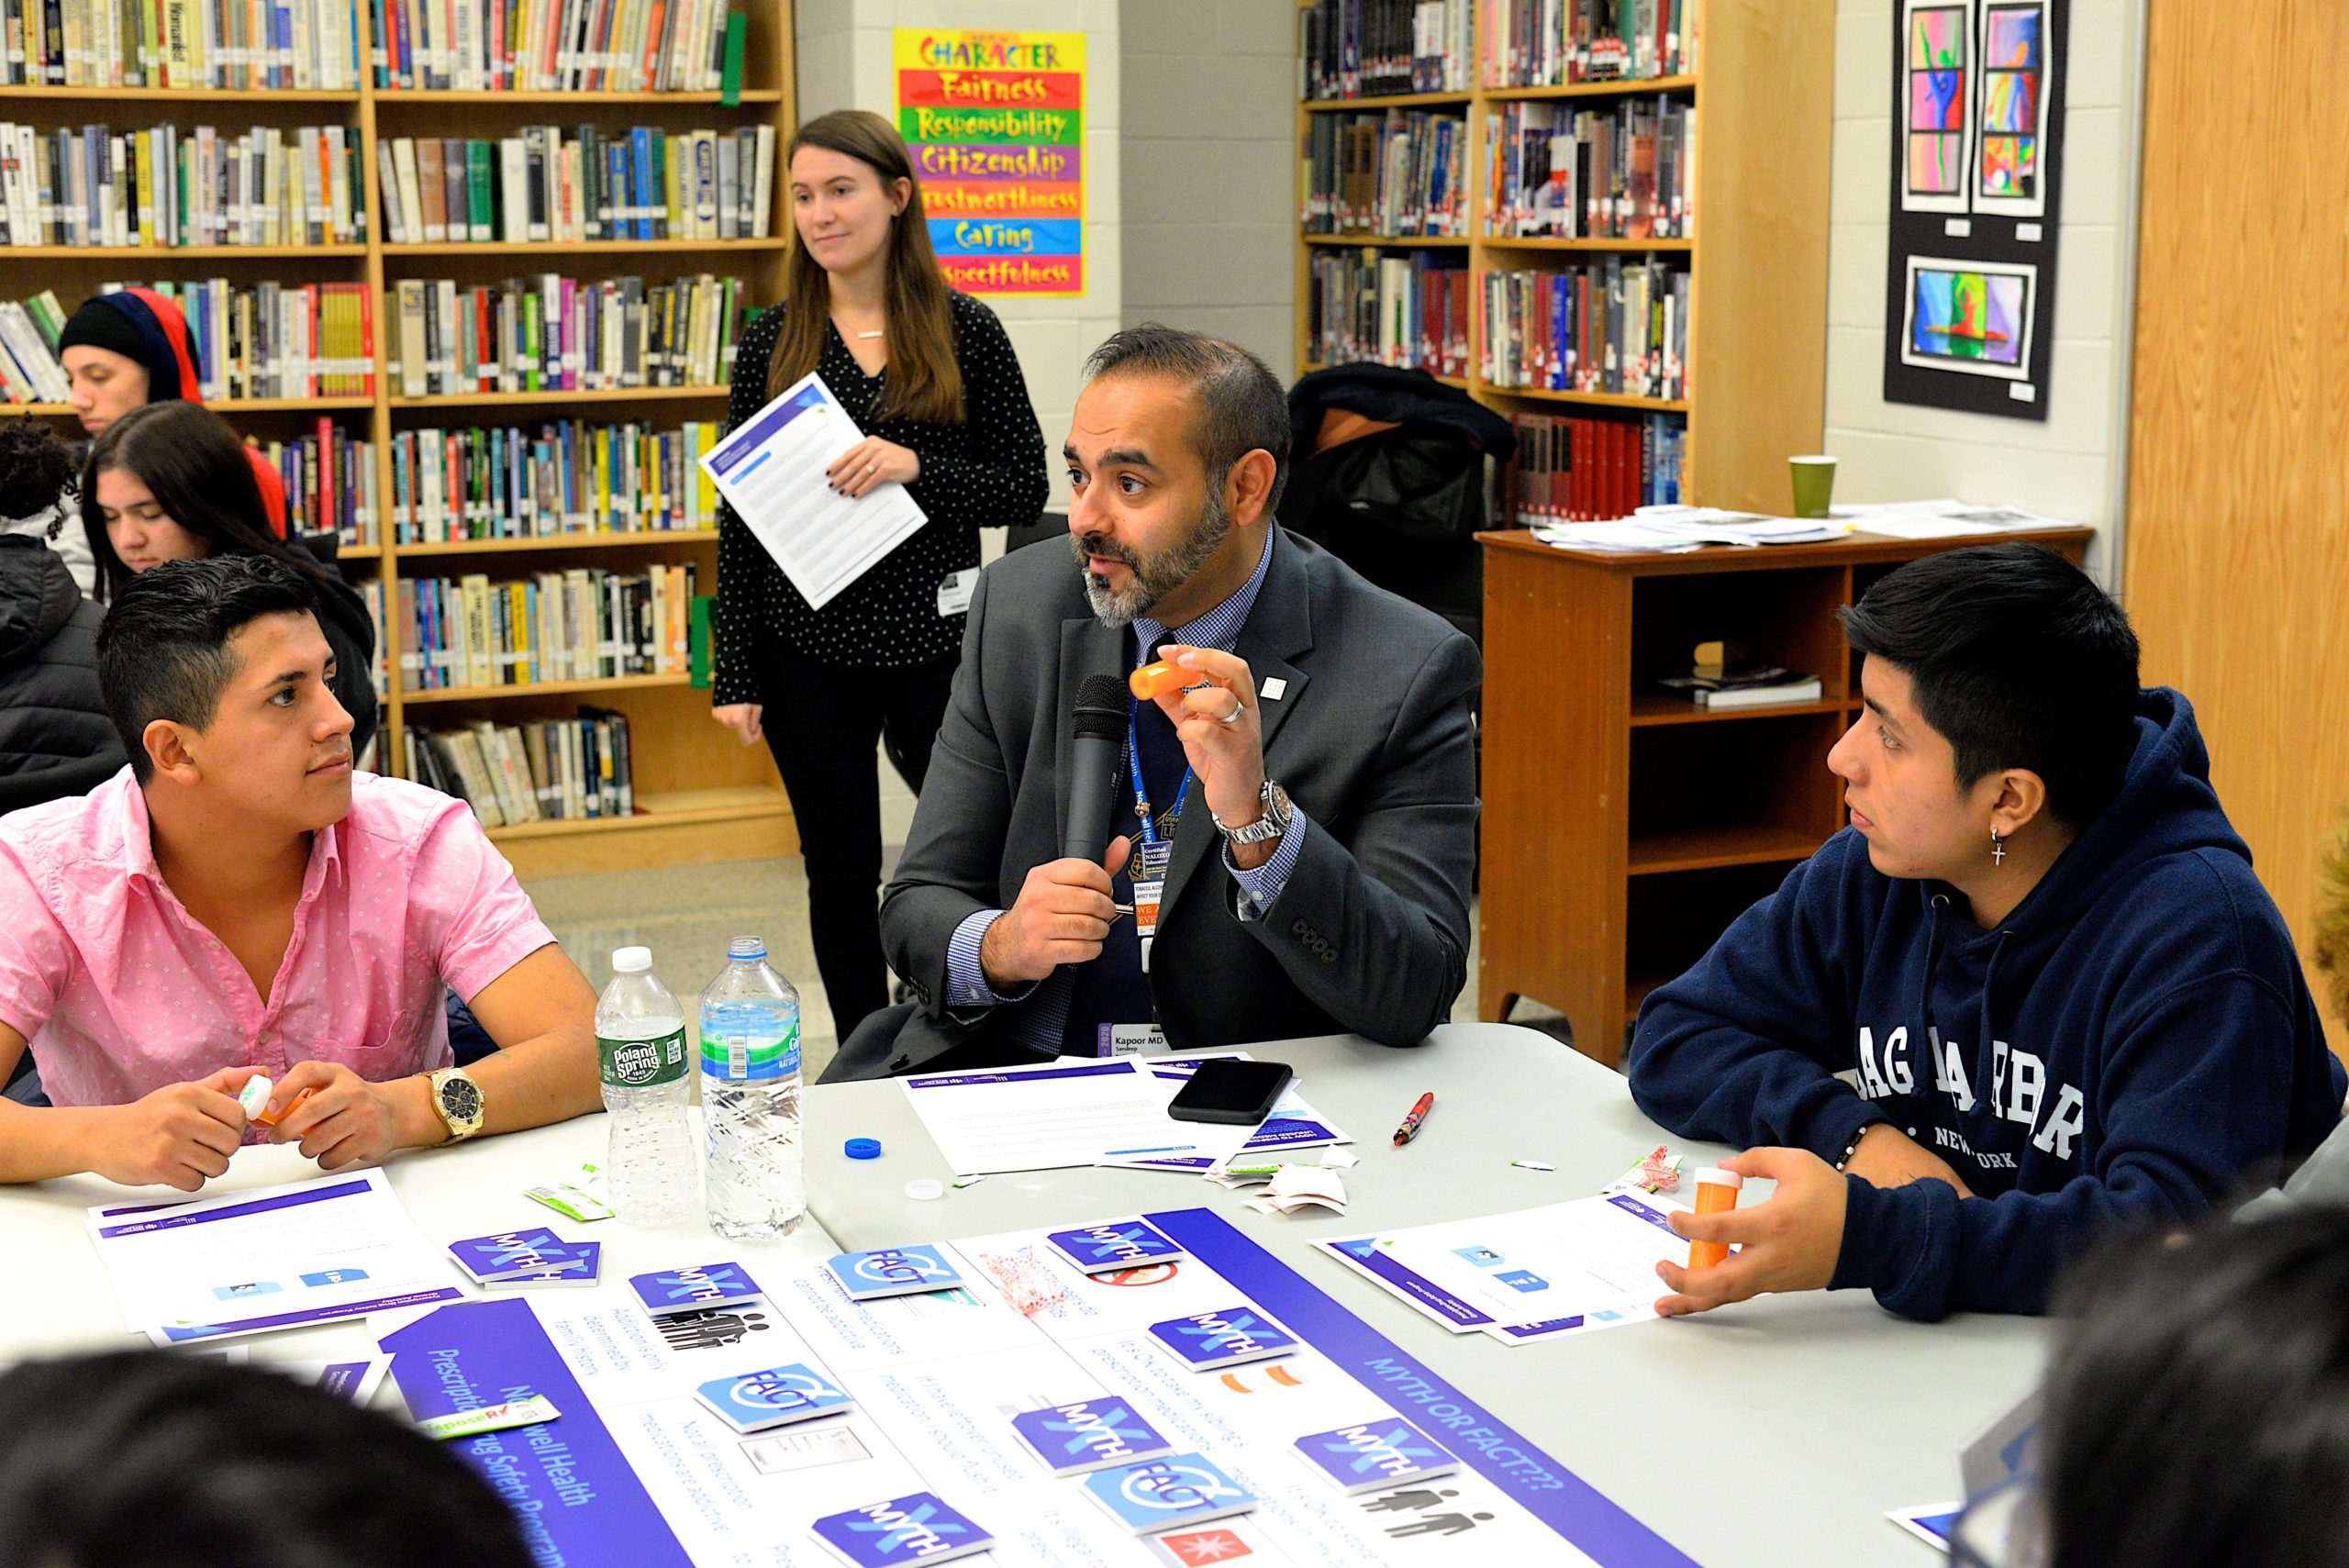 Sandeep Kappor, MD, leads students at one table in a discussion of prescription drug